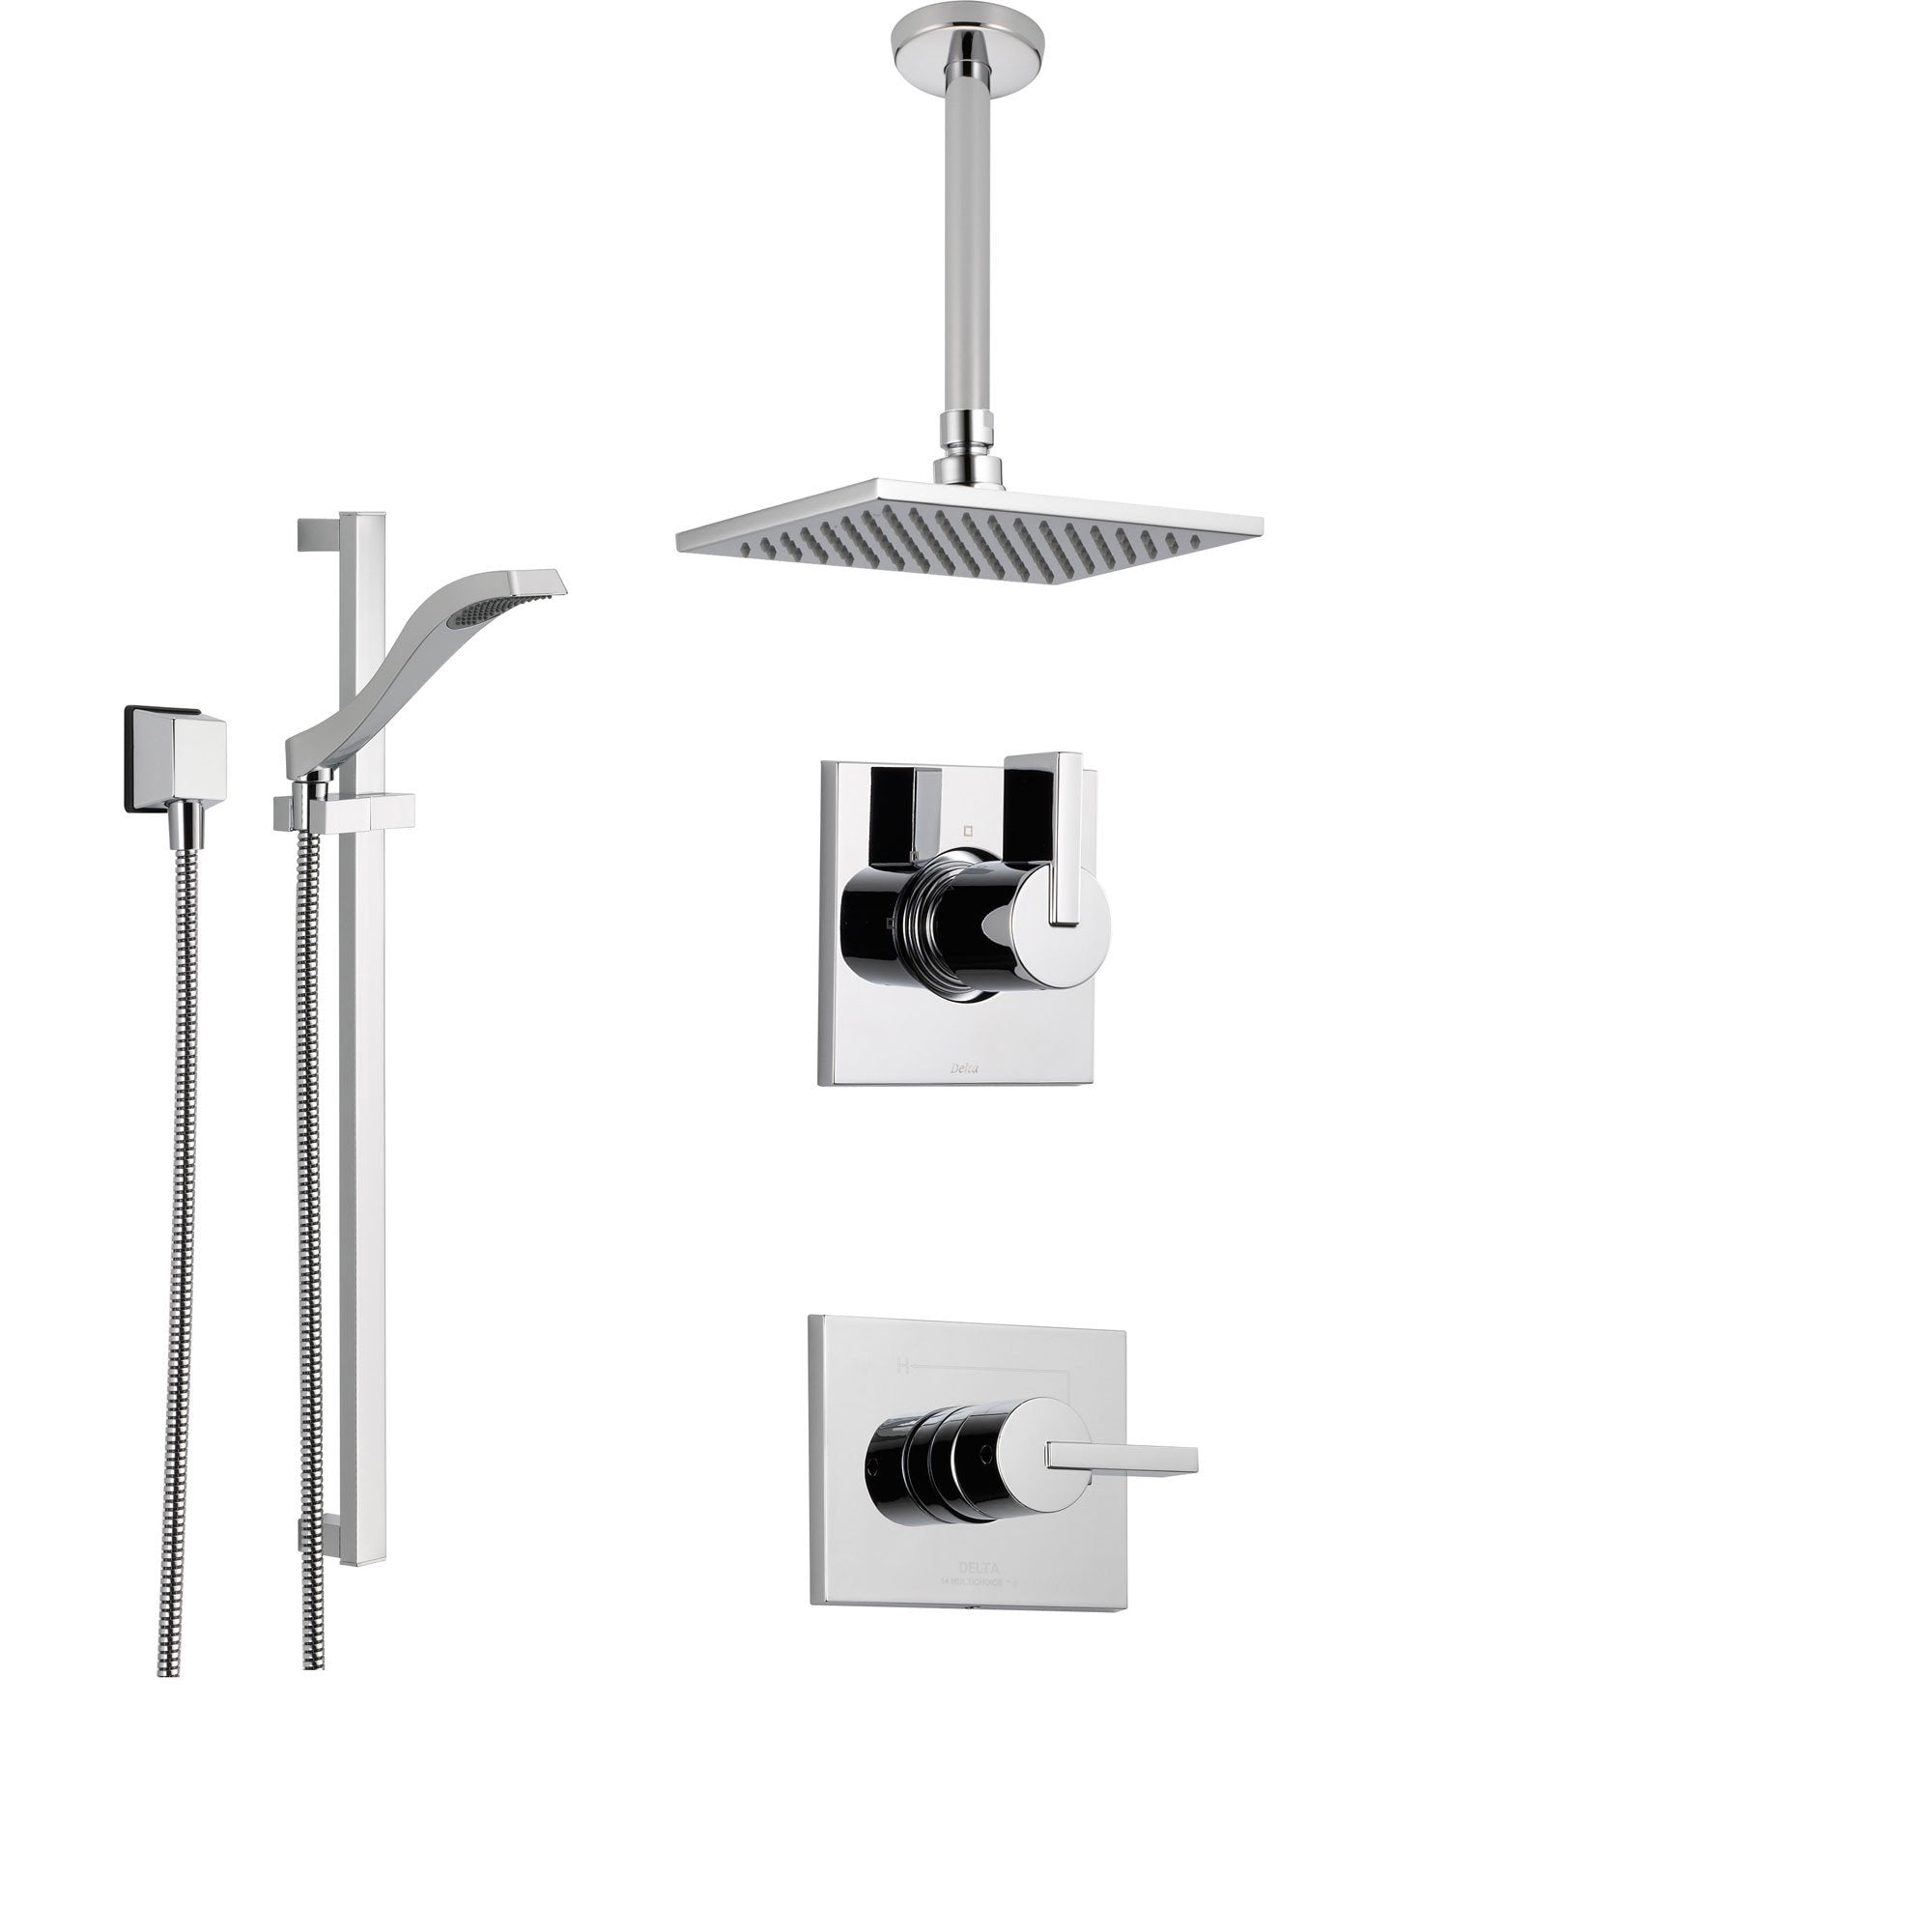 rough with series brilliance mixing control volume valve function in arzo stainless shower systems thermostatic package system dual tempassure delta less integrated chrome trim running